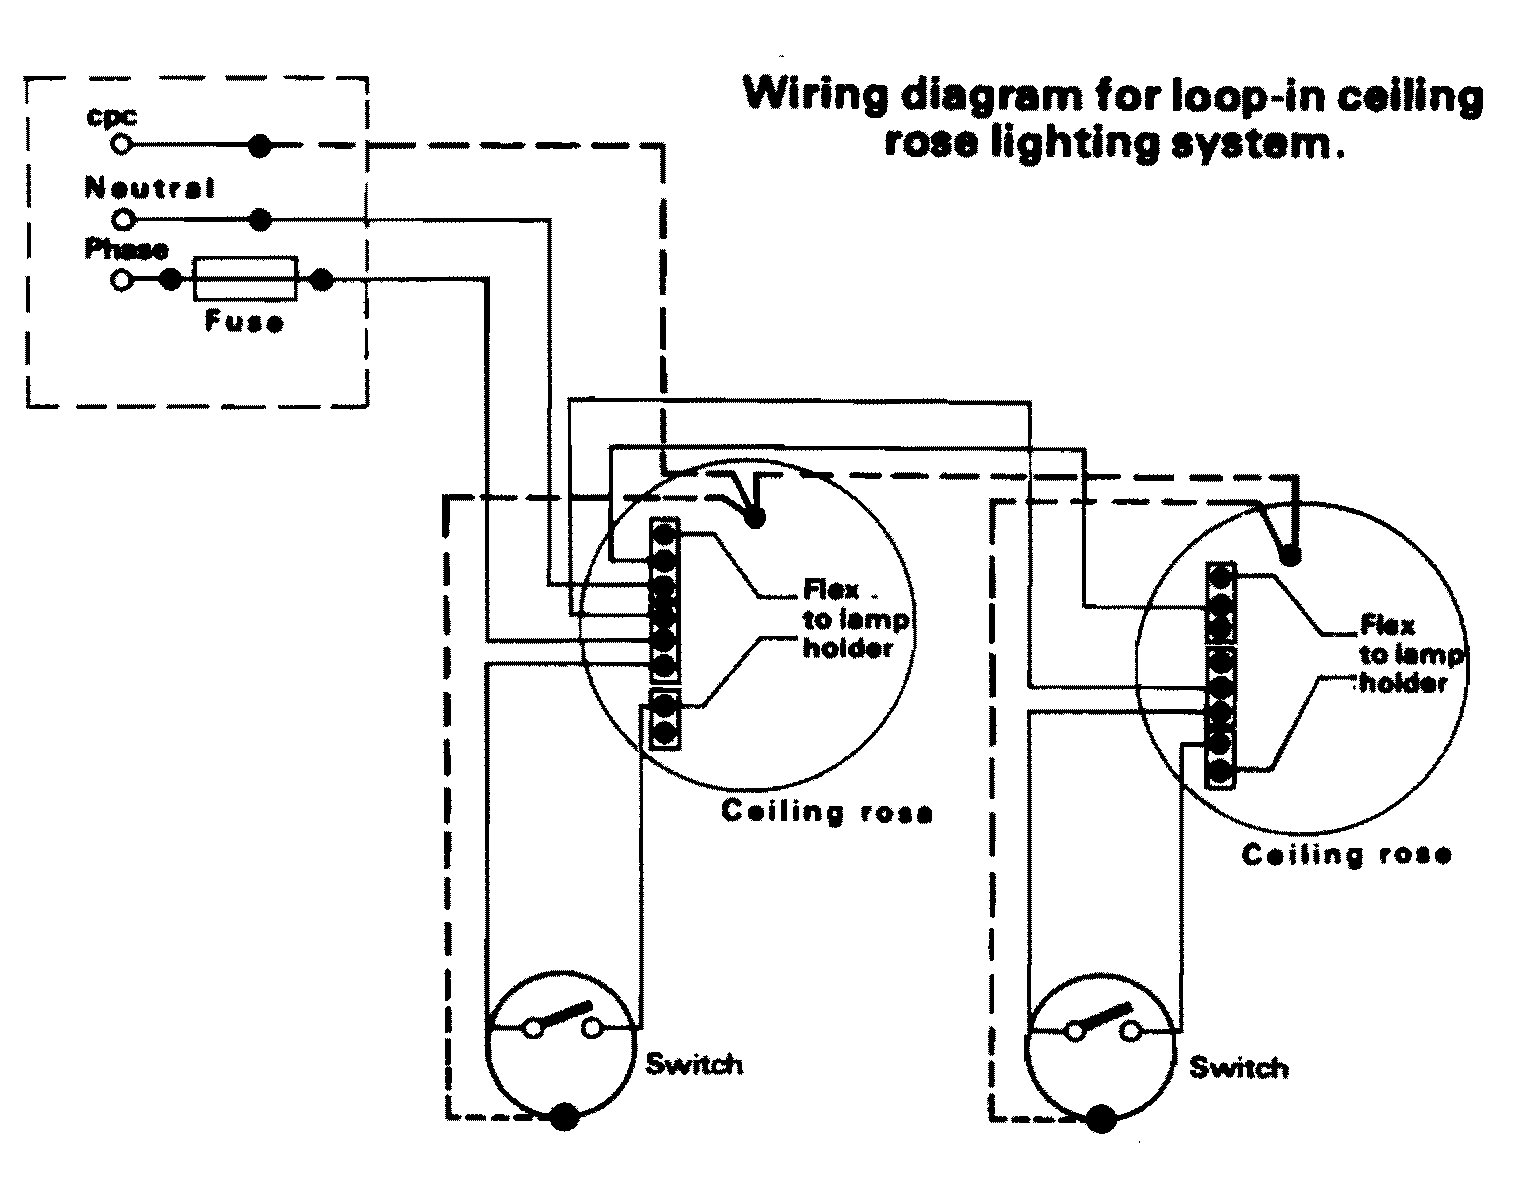 Duplex Receptacle Wiring Diagram from 1.bp.blogspot.com